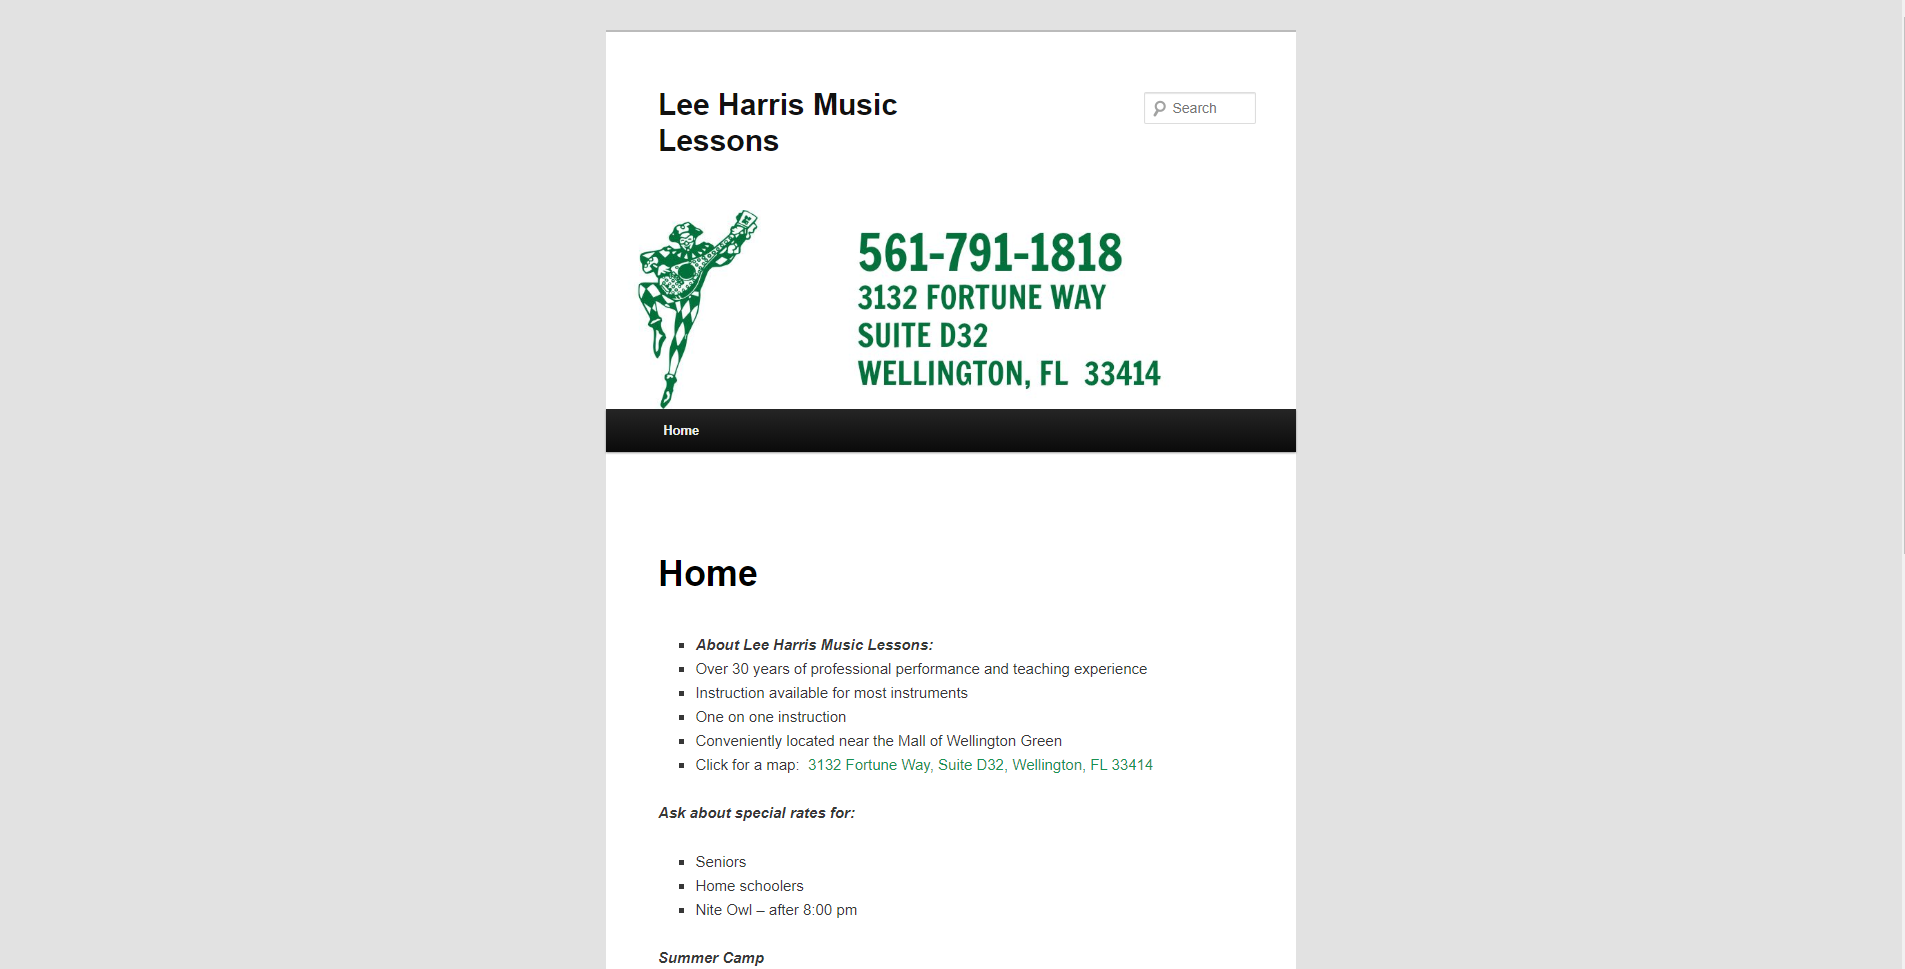 Lee Harris Music Lessons